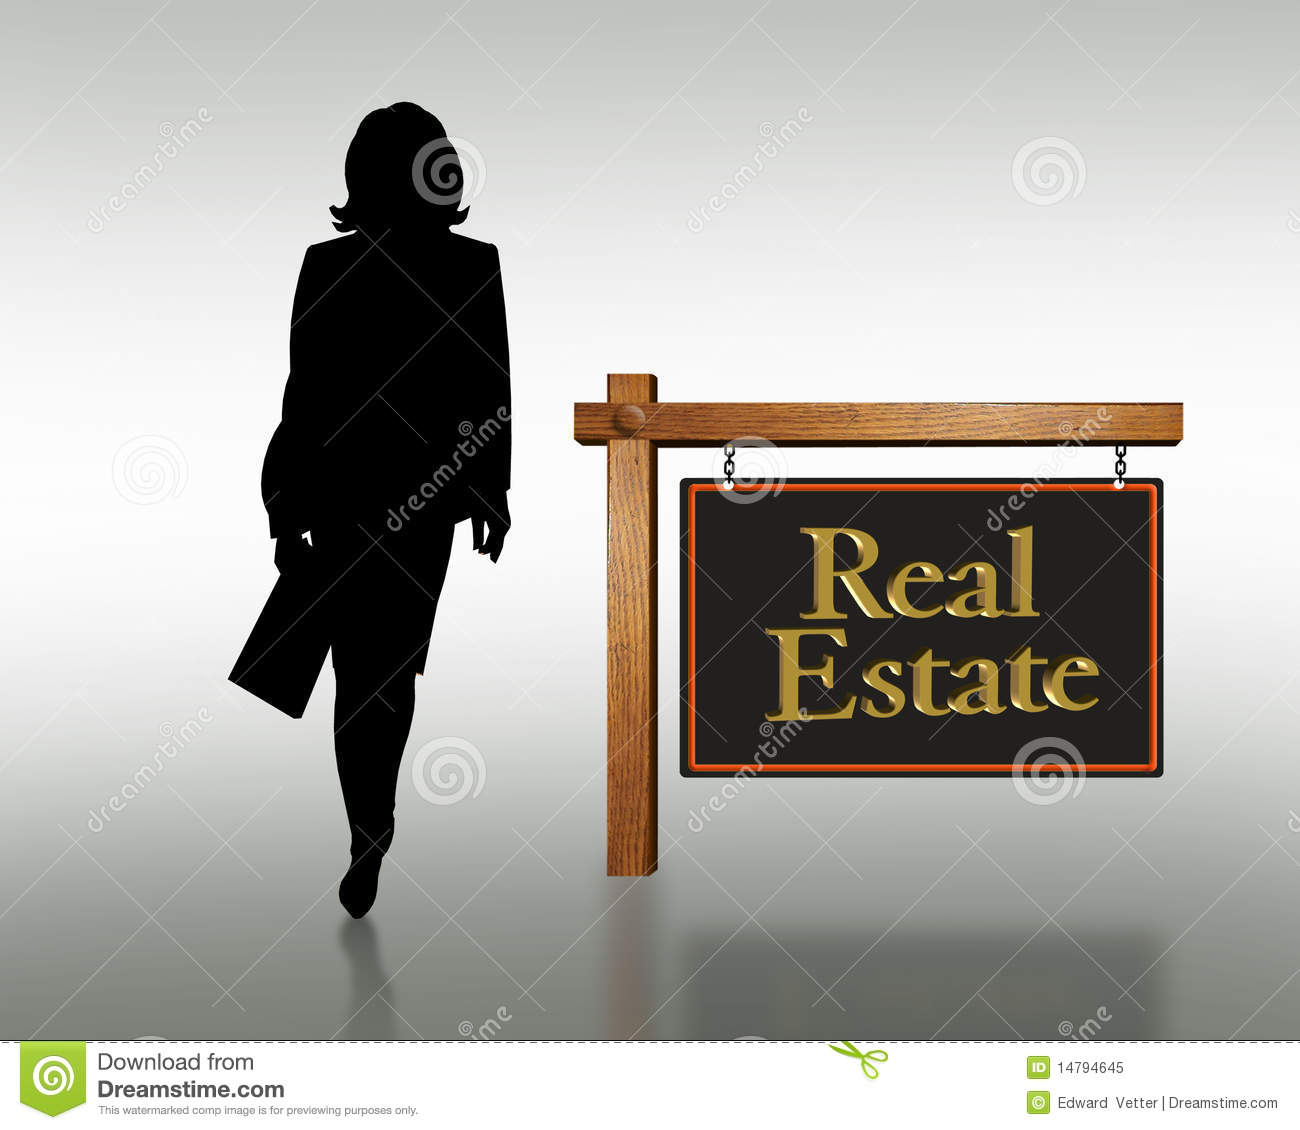 real estate woman business card logo